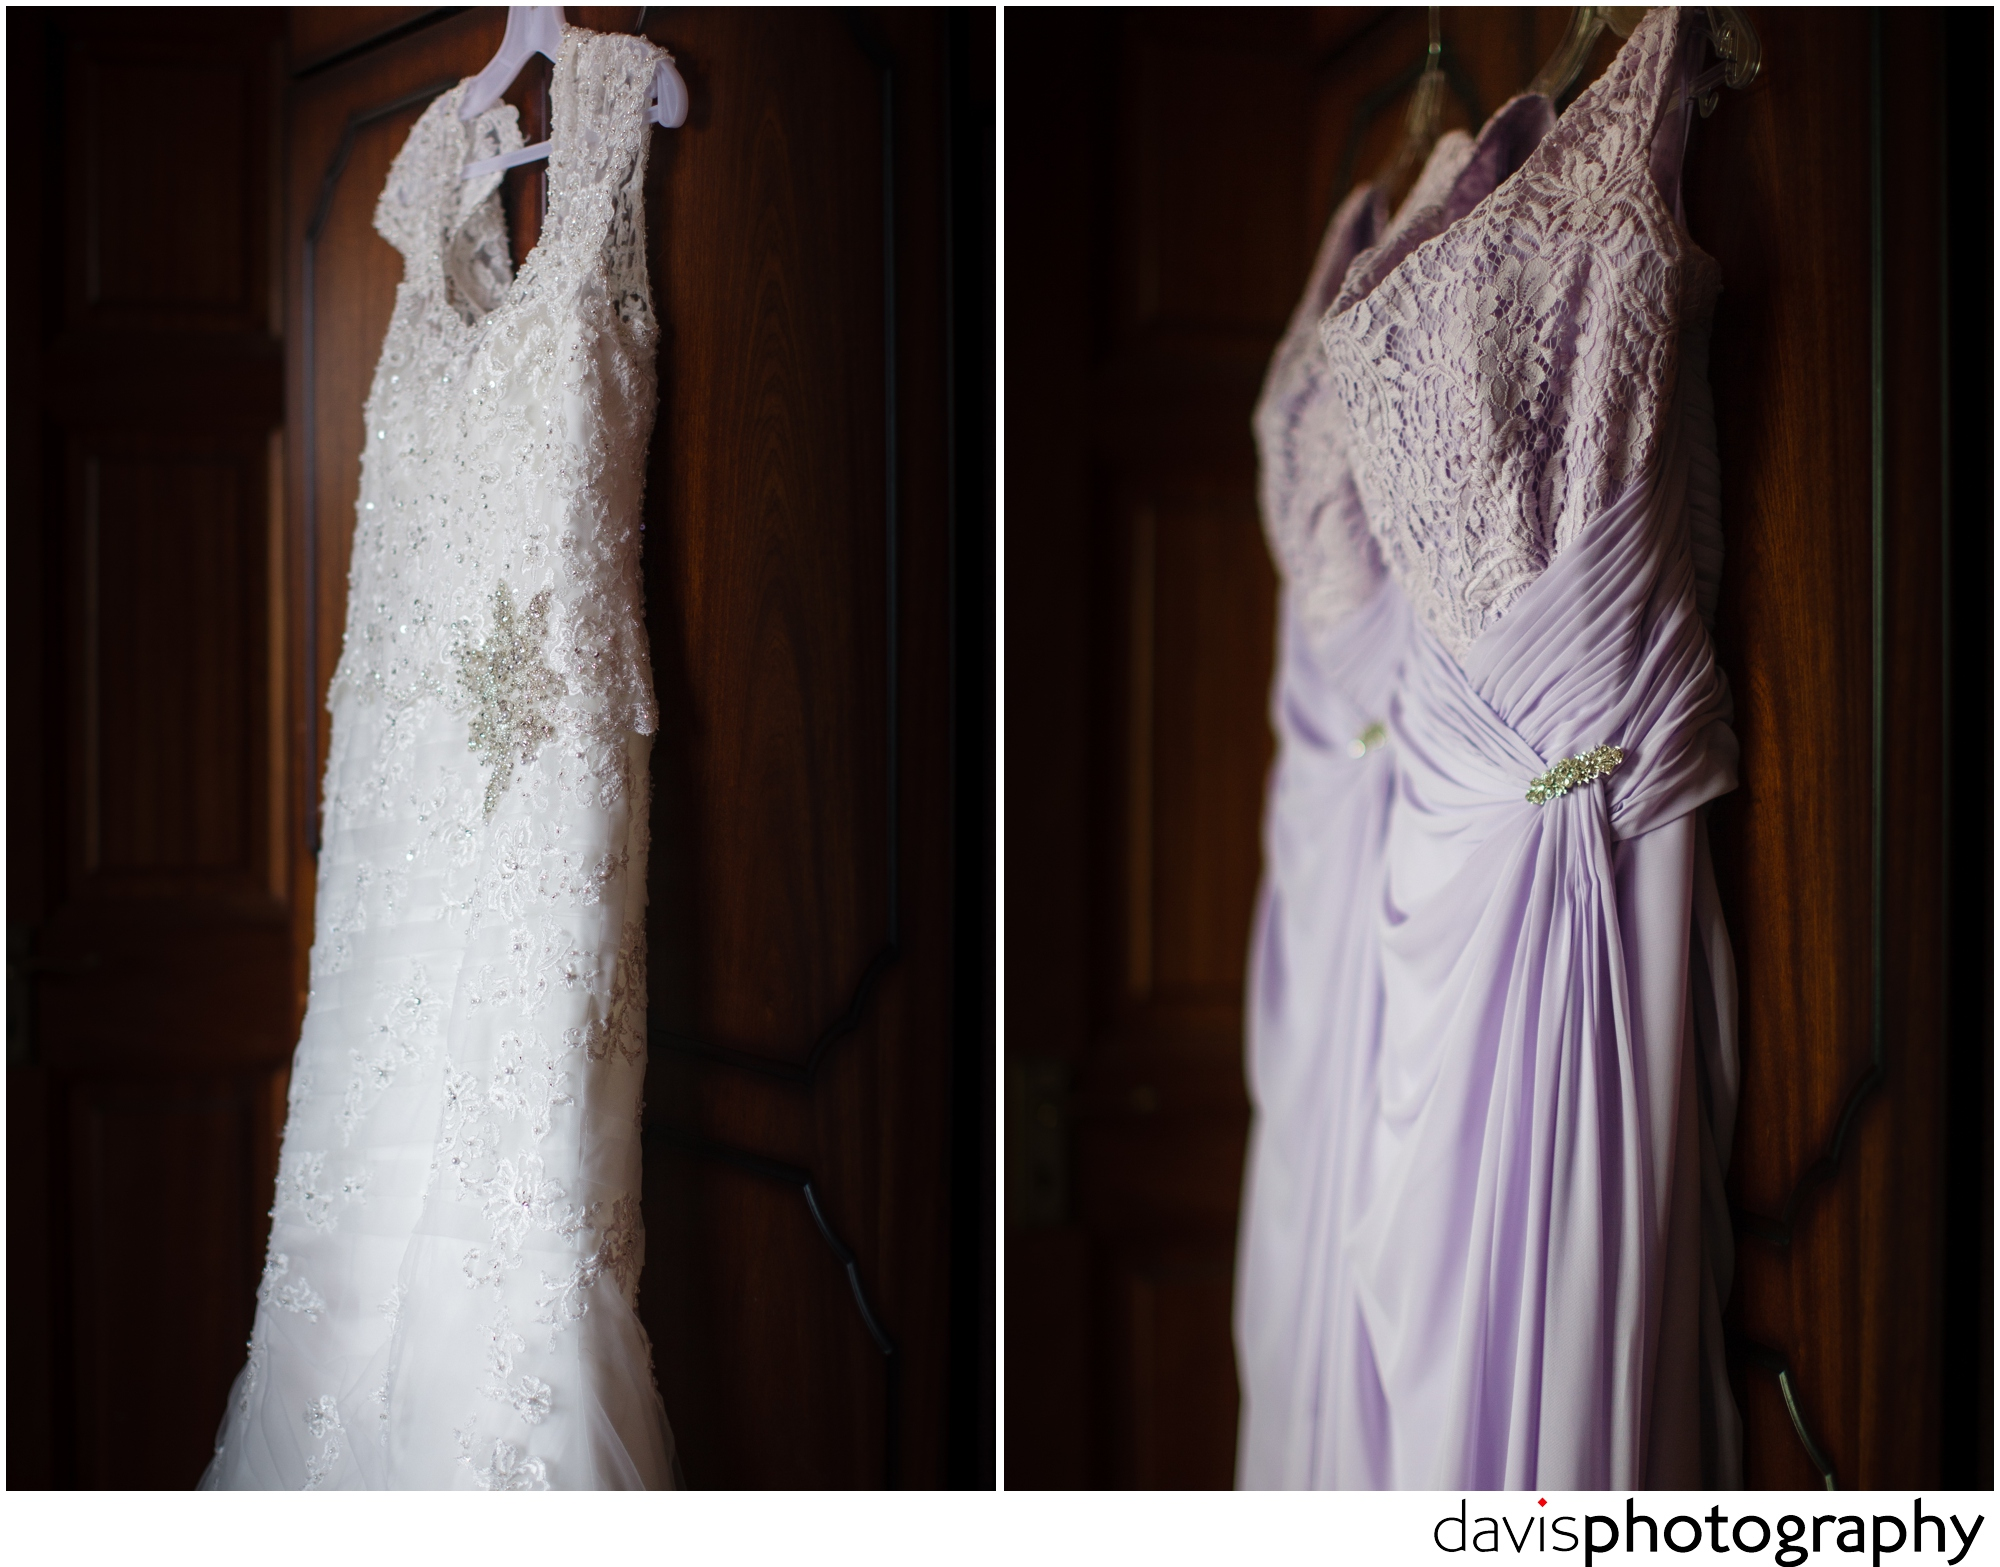 brides dress hanging up in her bedroom